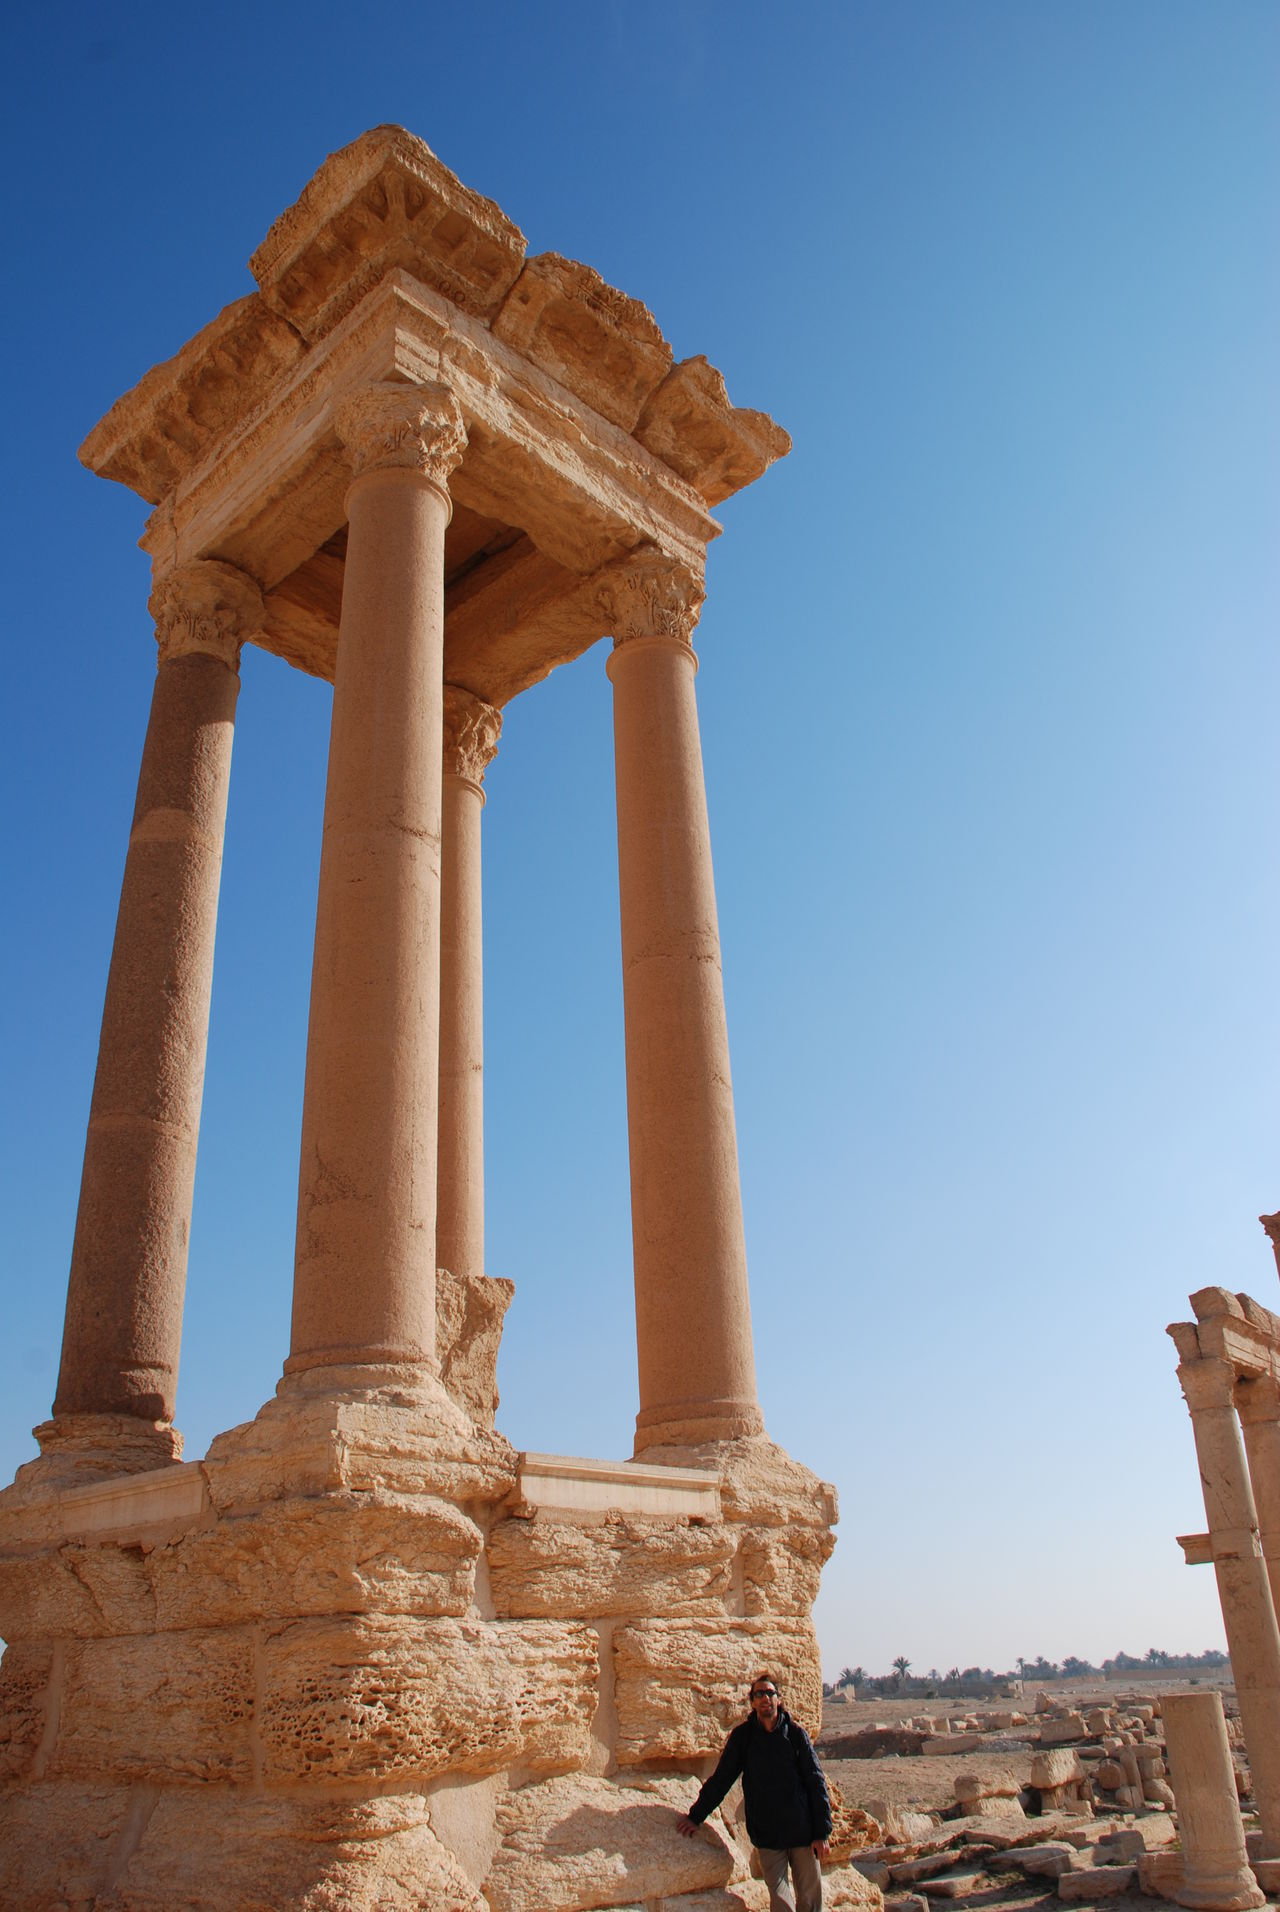 2009 Ancient Civilization Architectural Column Architecture Archival Before War Blue Clear Sky Cultures Day History Old Ruin Palmyra Sky Syria  Tetrapylon Gate The Past Tourism Travel Destinations